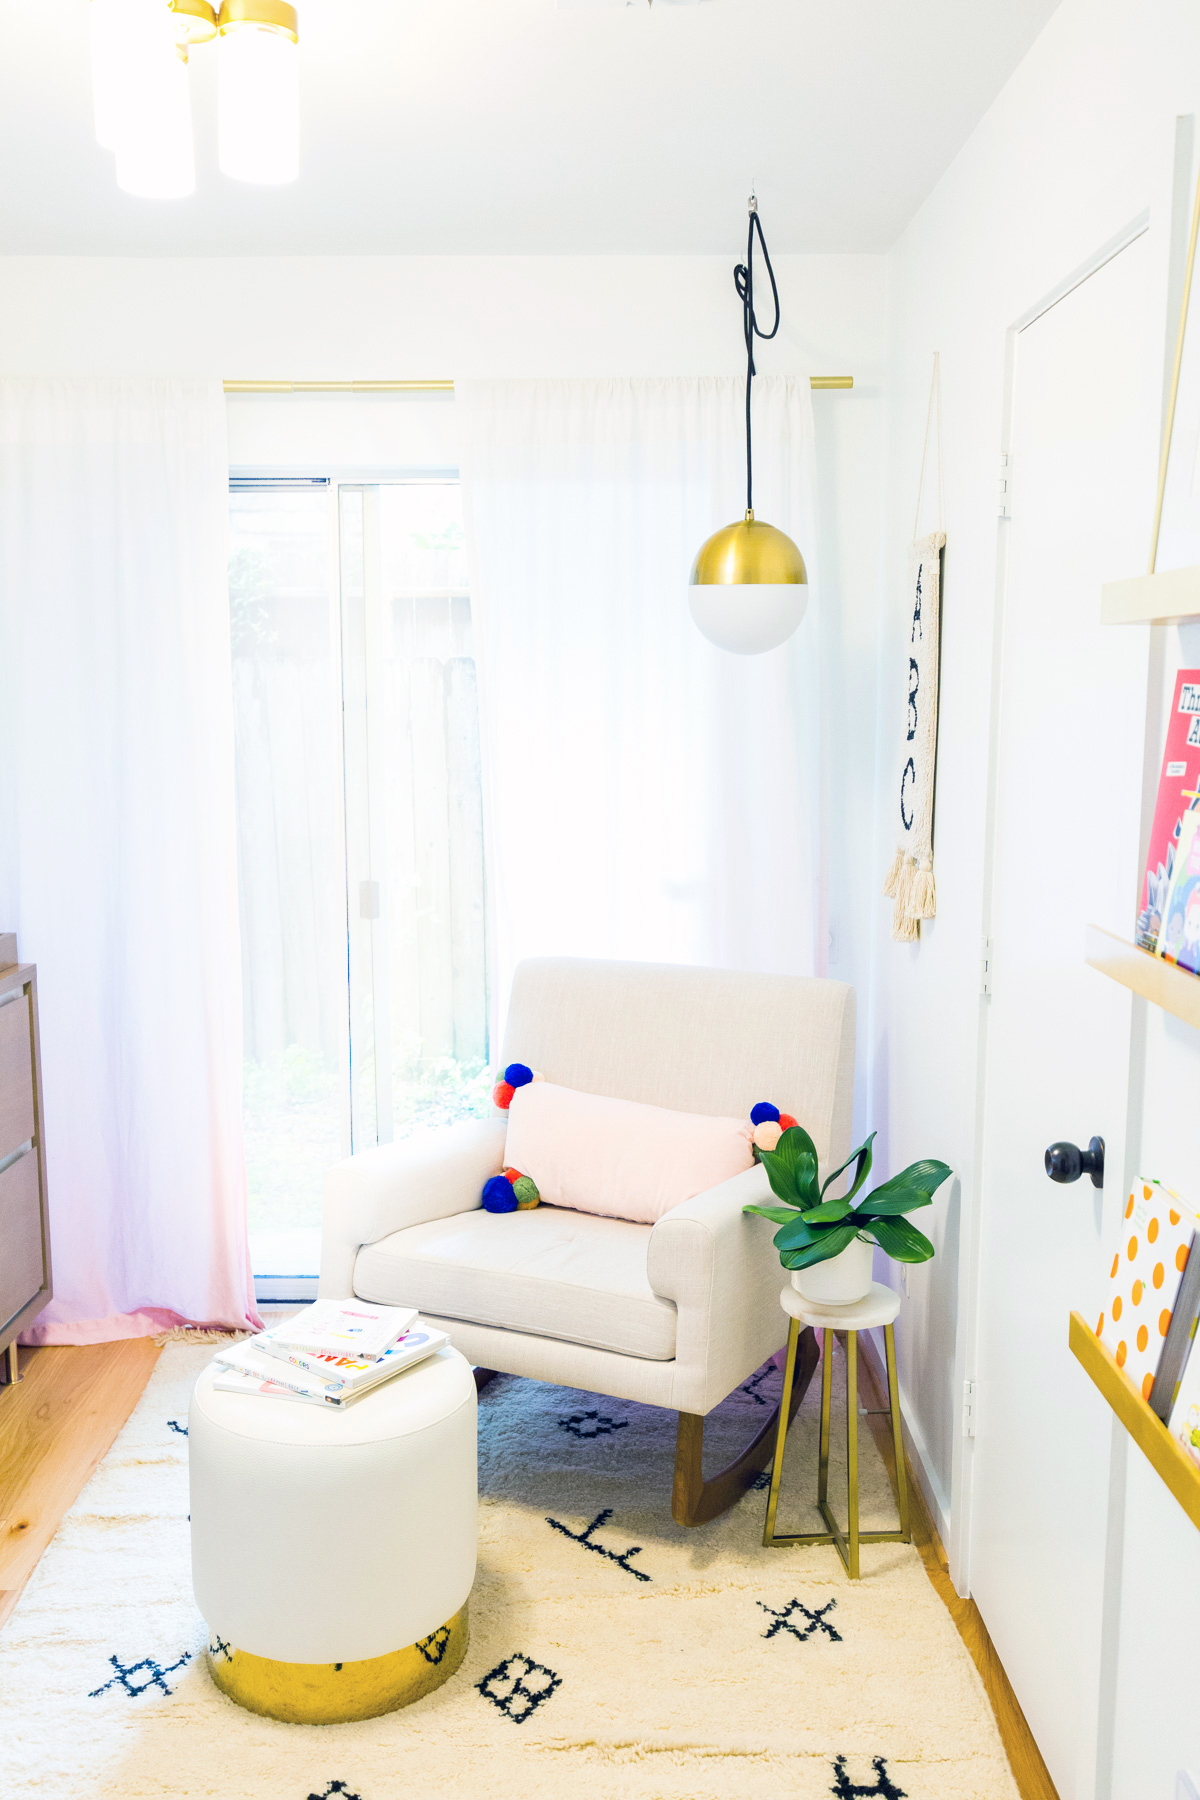 Pom poms and tassels in a nursery by Sugar and Cloth